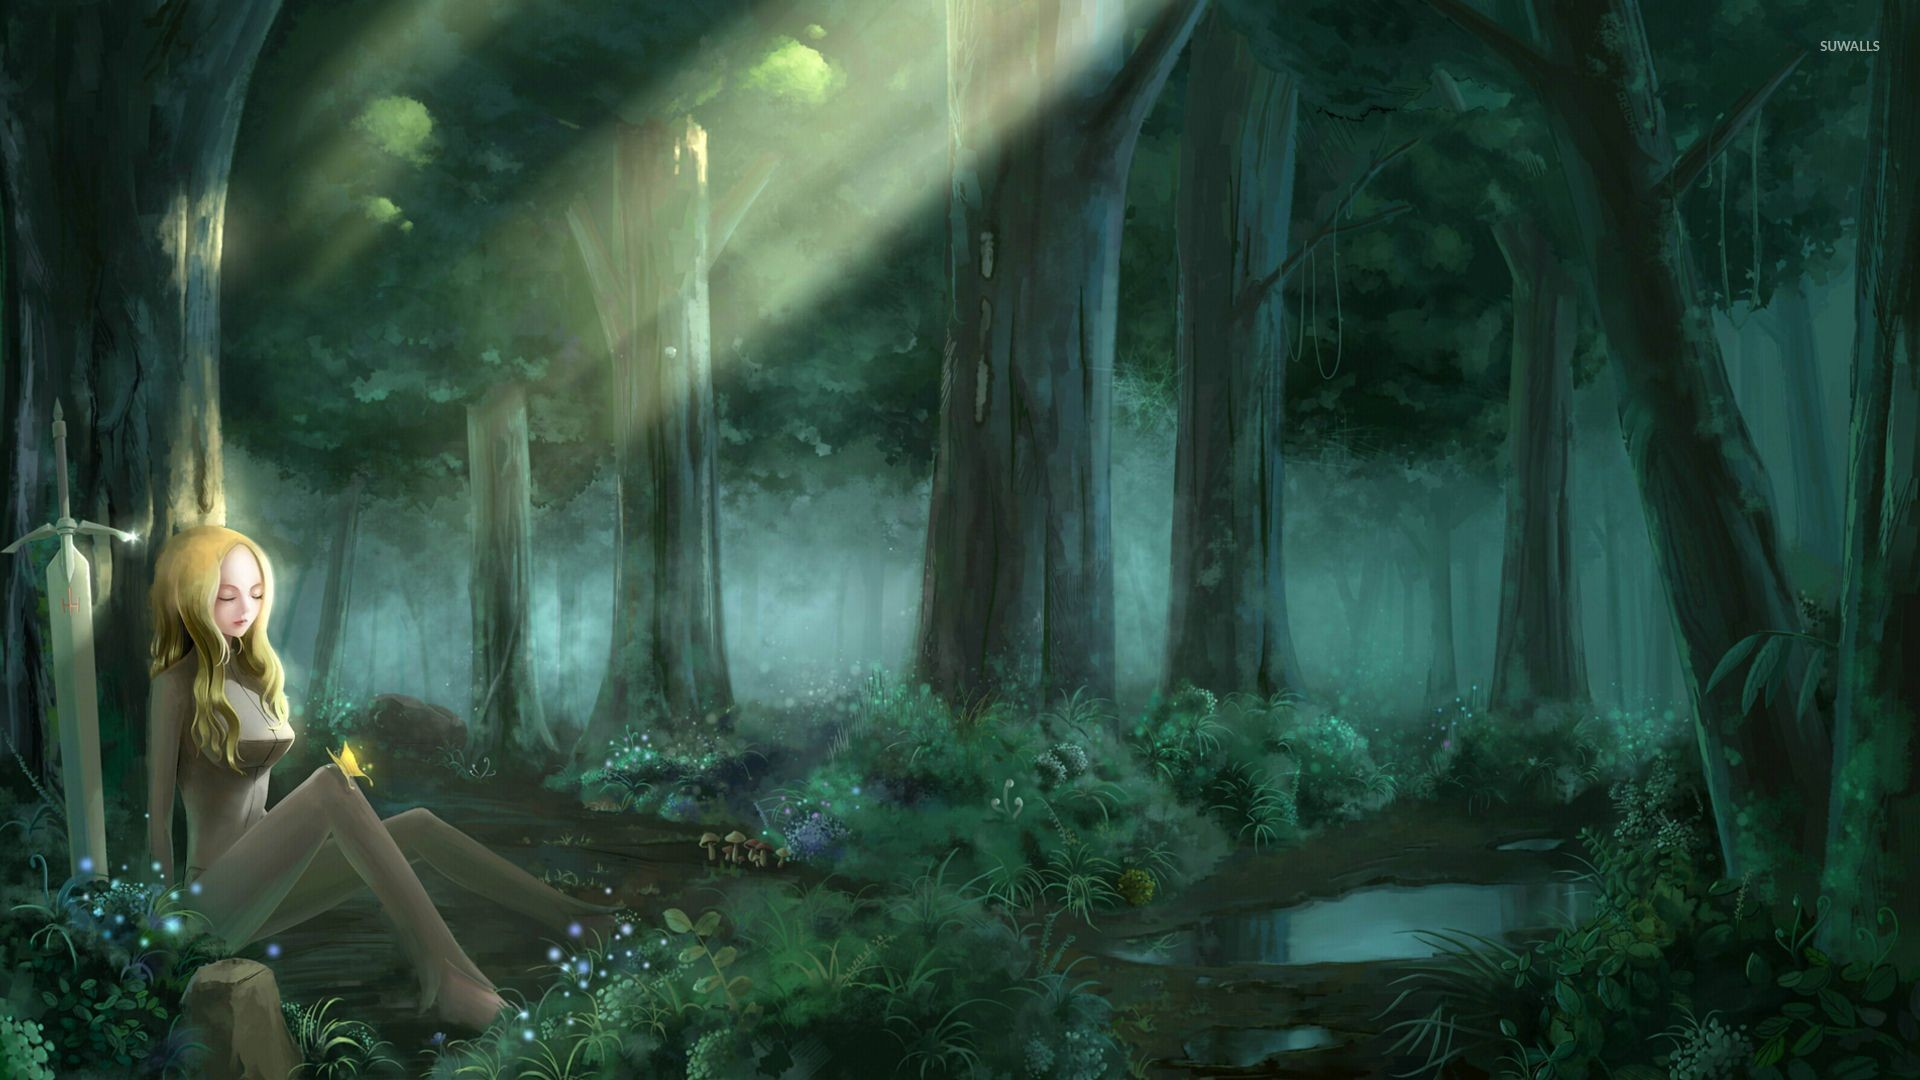 Clare in the forest – Claymore wallpaper